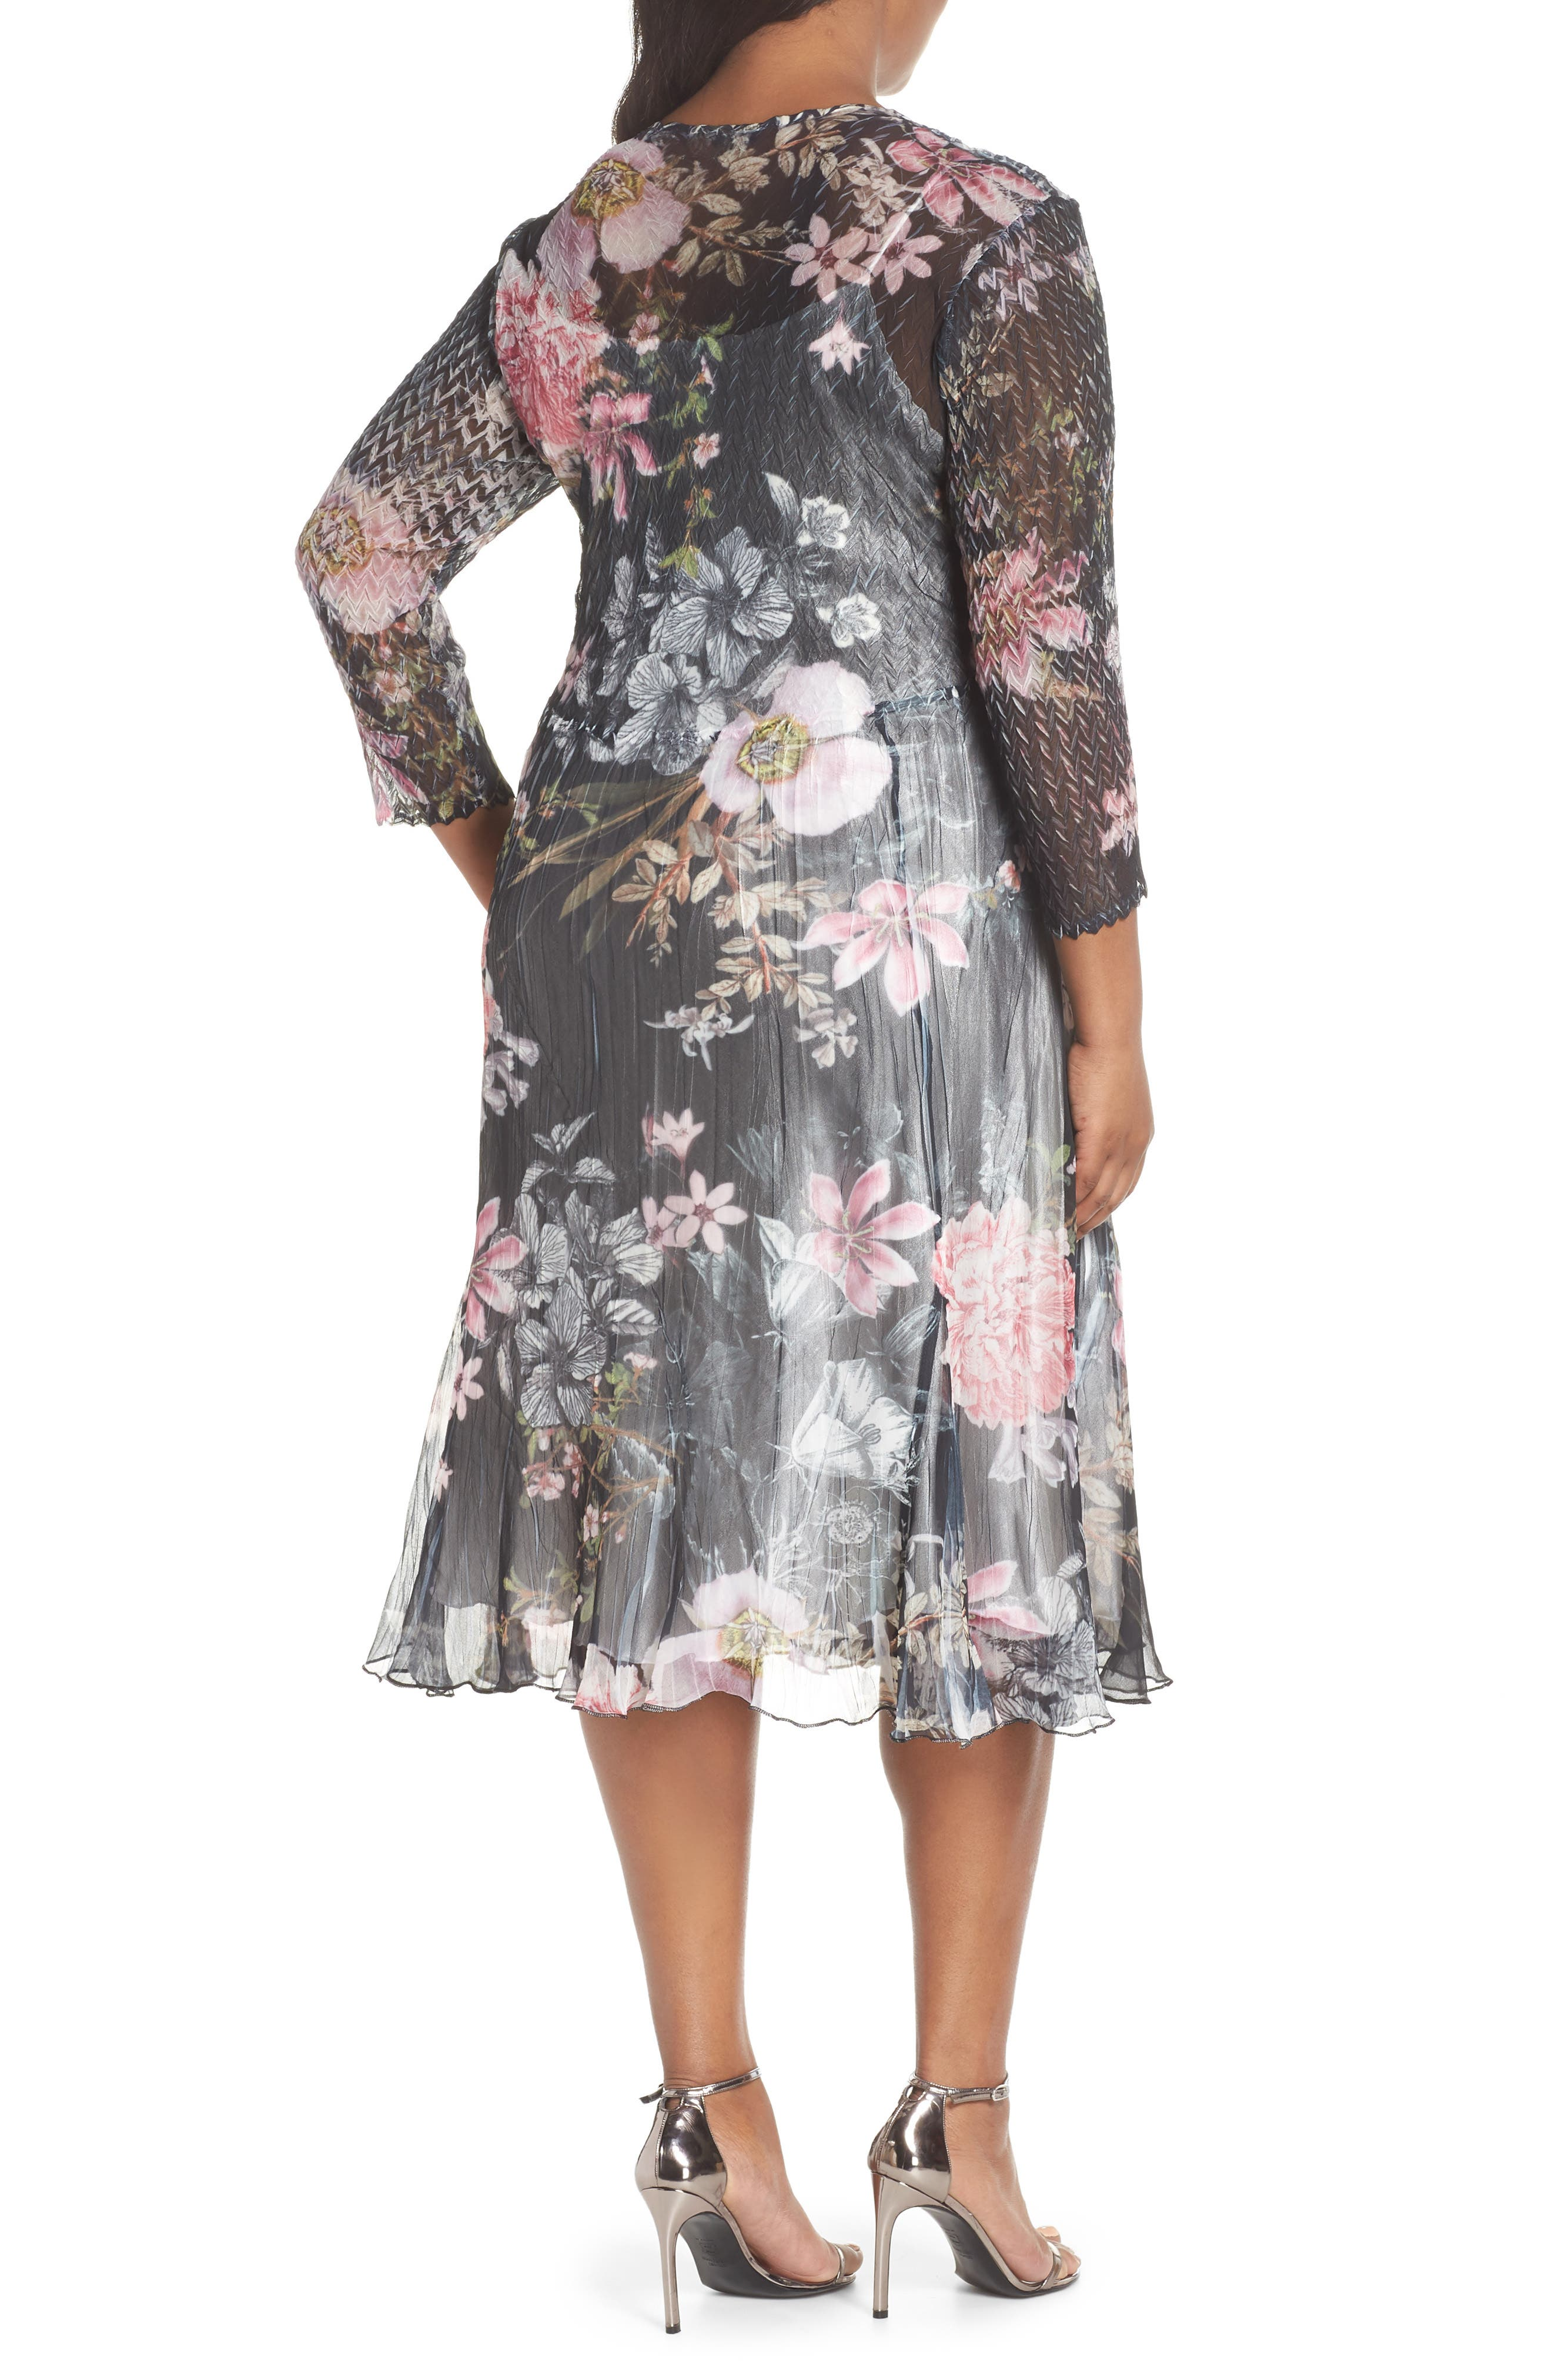 Kamarov Floral Charmeuse & Chiffon Floral A-Line Dress,                             Alternate thumbnail 2, color,                             001